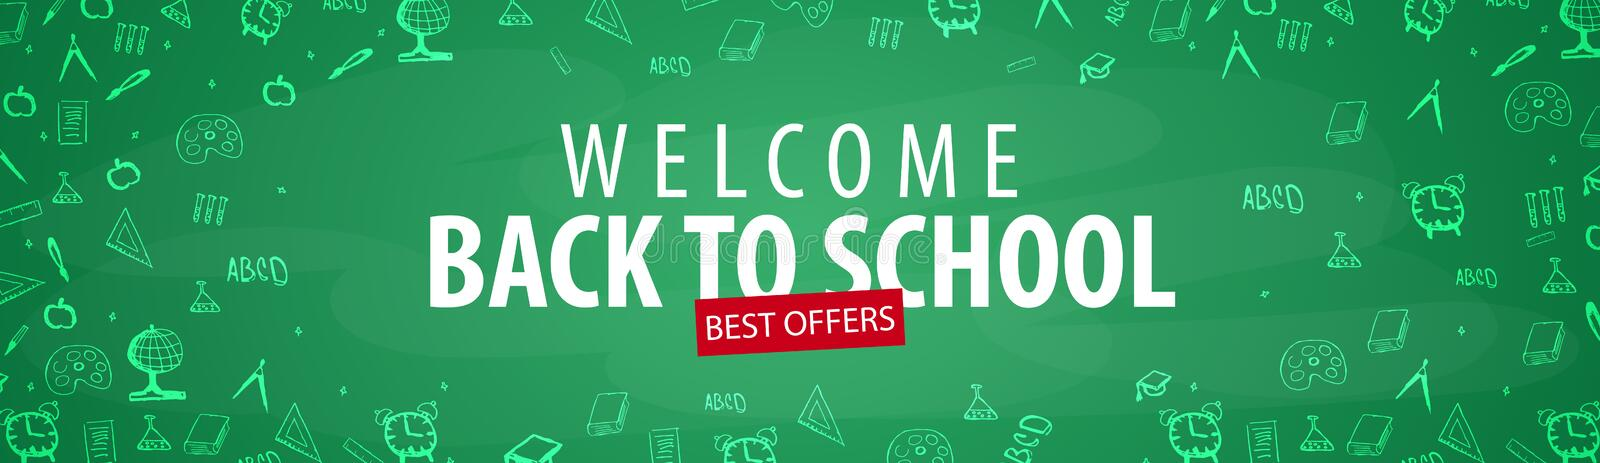 Welcome Back to School banner with different school objects. School sale banners and best offers. royalty free illustration